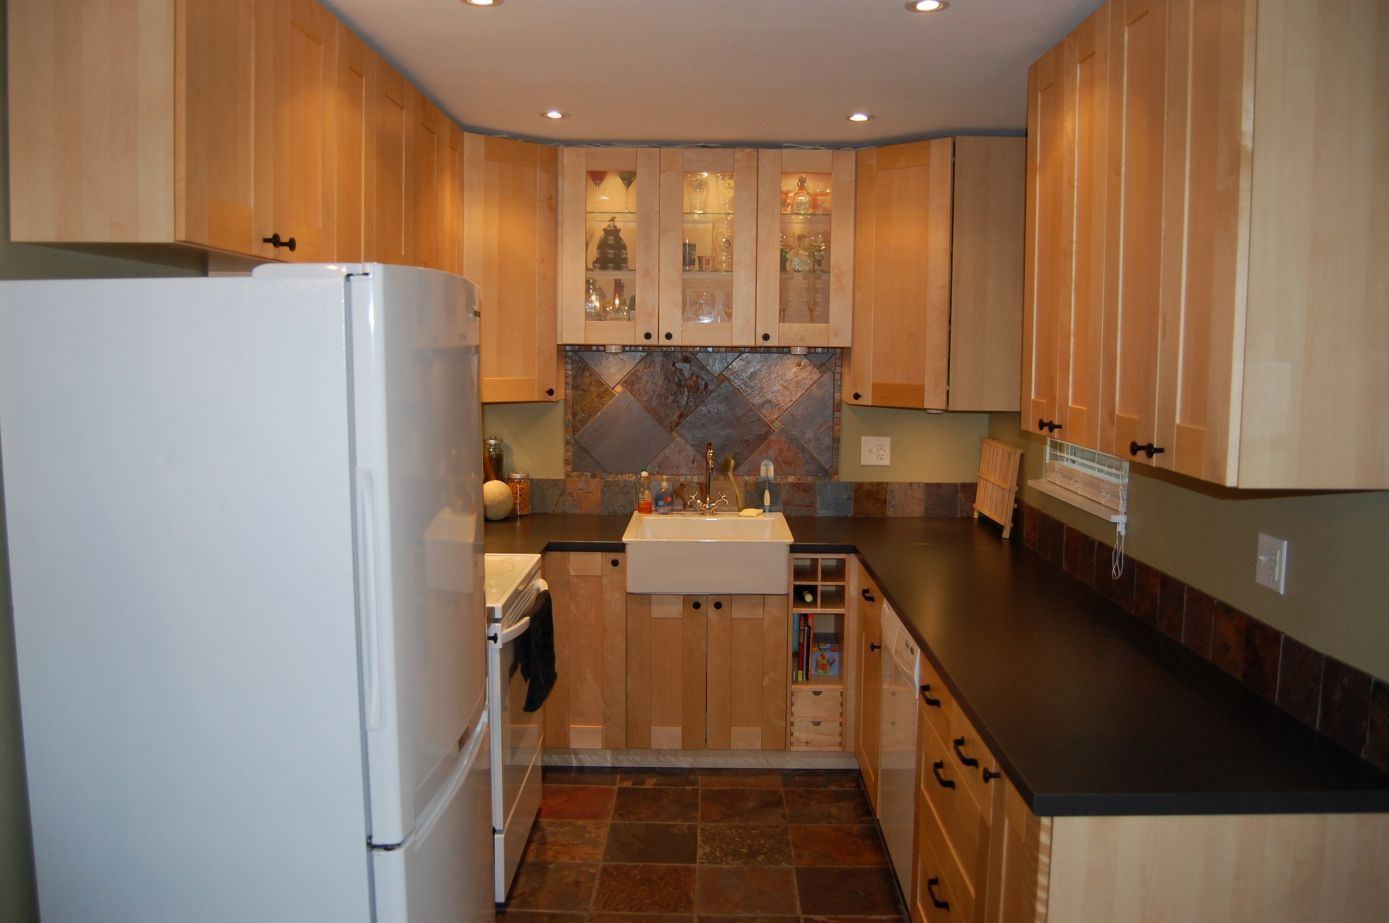 2019 small u shaped kitchen remodel ideas - favorite interior paint